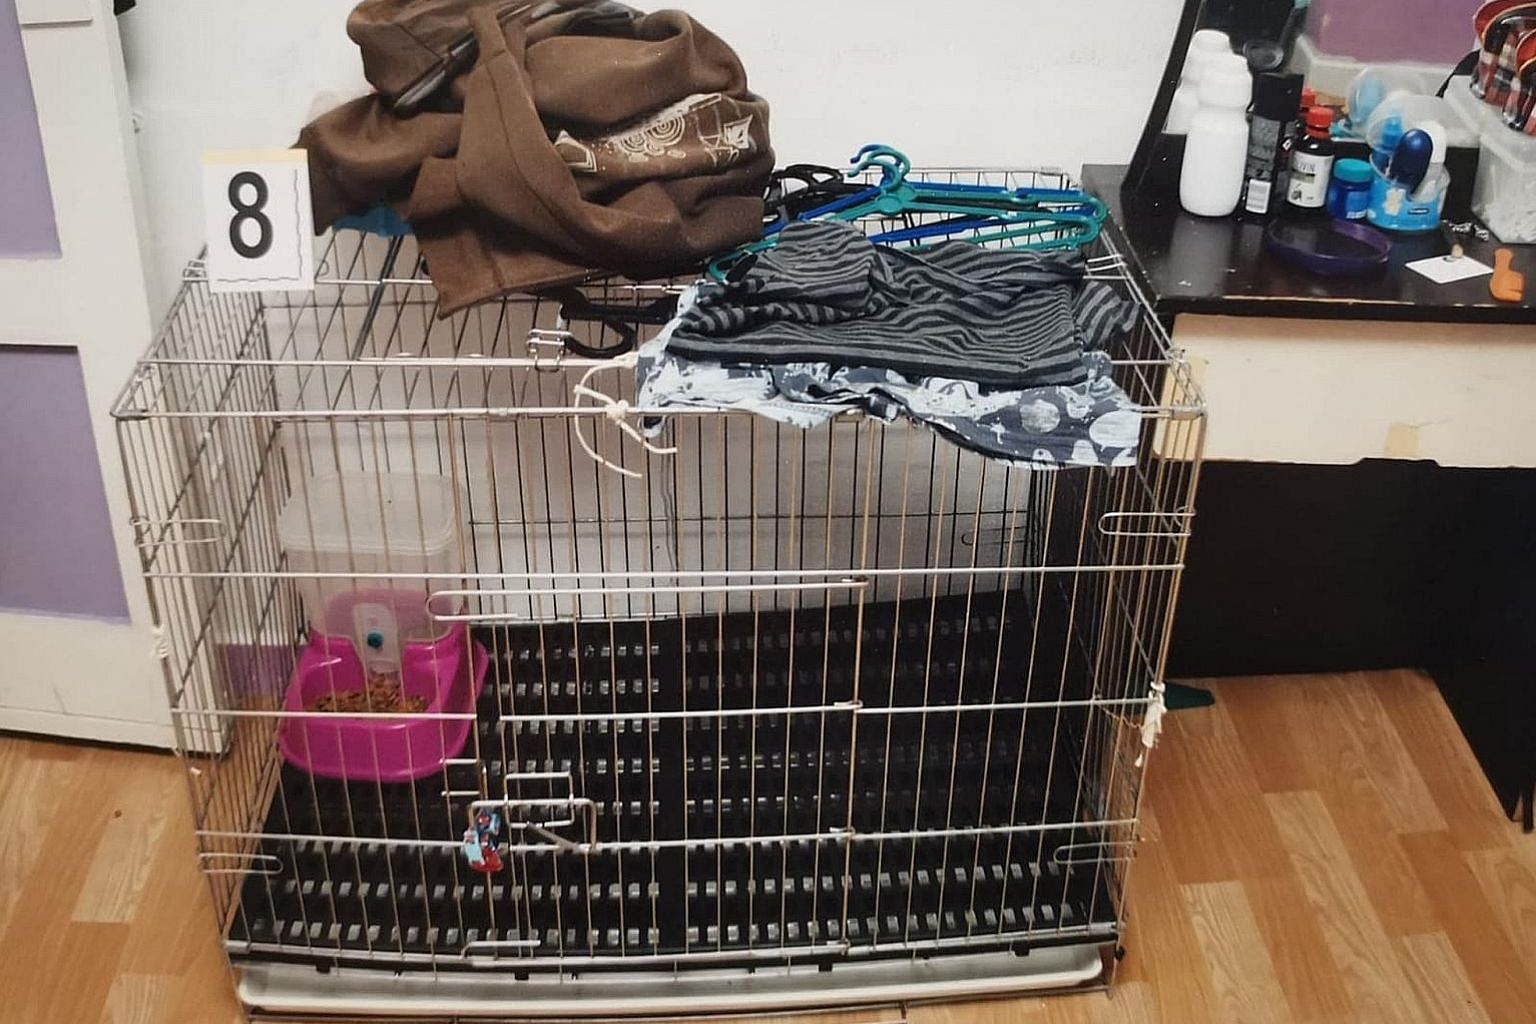 The five-year-old victim's parents also committed other acts of abuse against the boy, including confining him in a pet cage (above) and pinching him with a pair of pliers. Ridzuan Mega Abdul Rahman and Azlin Arujunah splashed hot water on their five